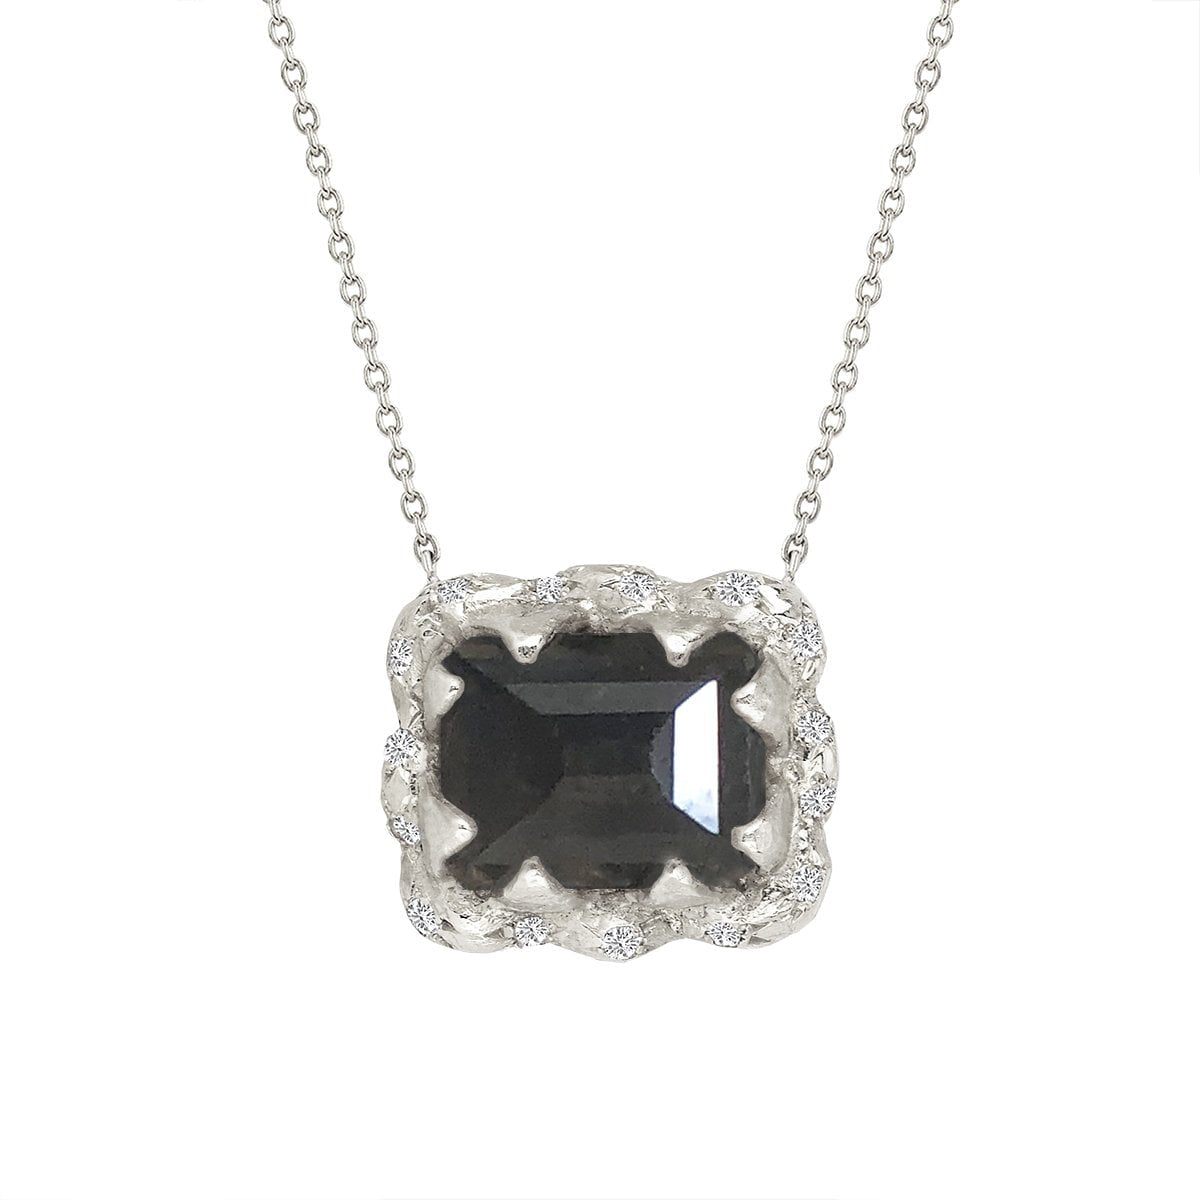 Queen Emerald Cut Black Diamond Necklace with Sprinkled Diamonds